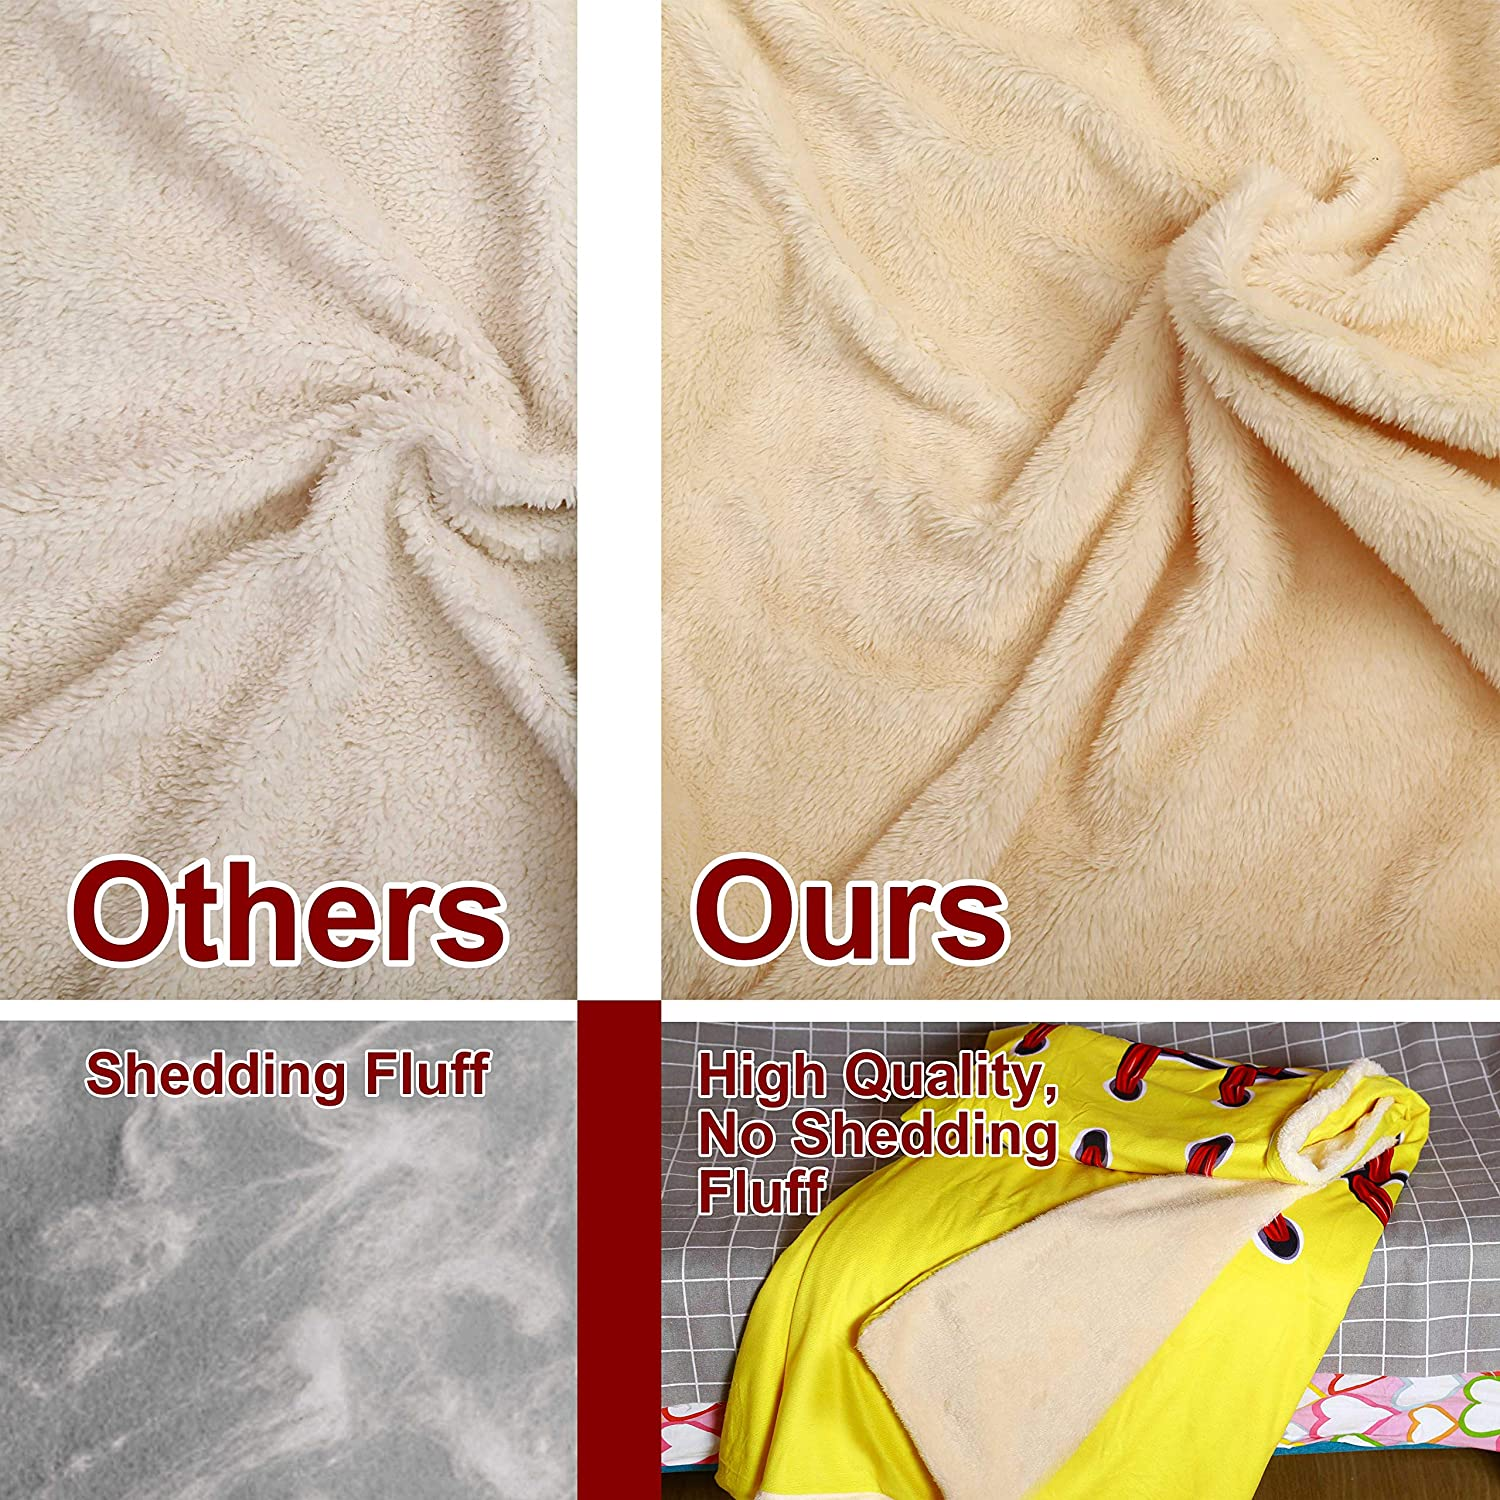 3D Printed Warm Fluffy Cozy Soft TV Bed Couch Sport Fans Boys Teens Gift Blanket Comfy Microfiber Velvet Plush Throw,60 x 80 SKOLOO Soccer Red Flame Flannel Fleece Throw Blanket